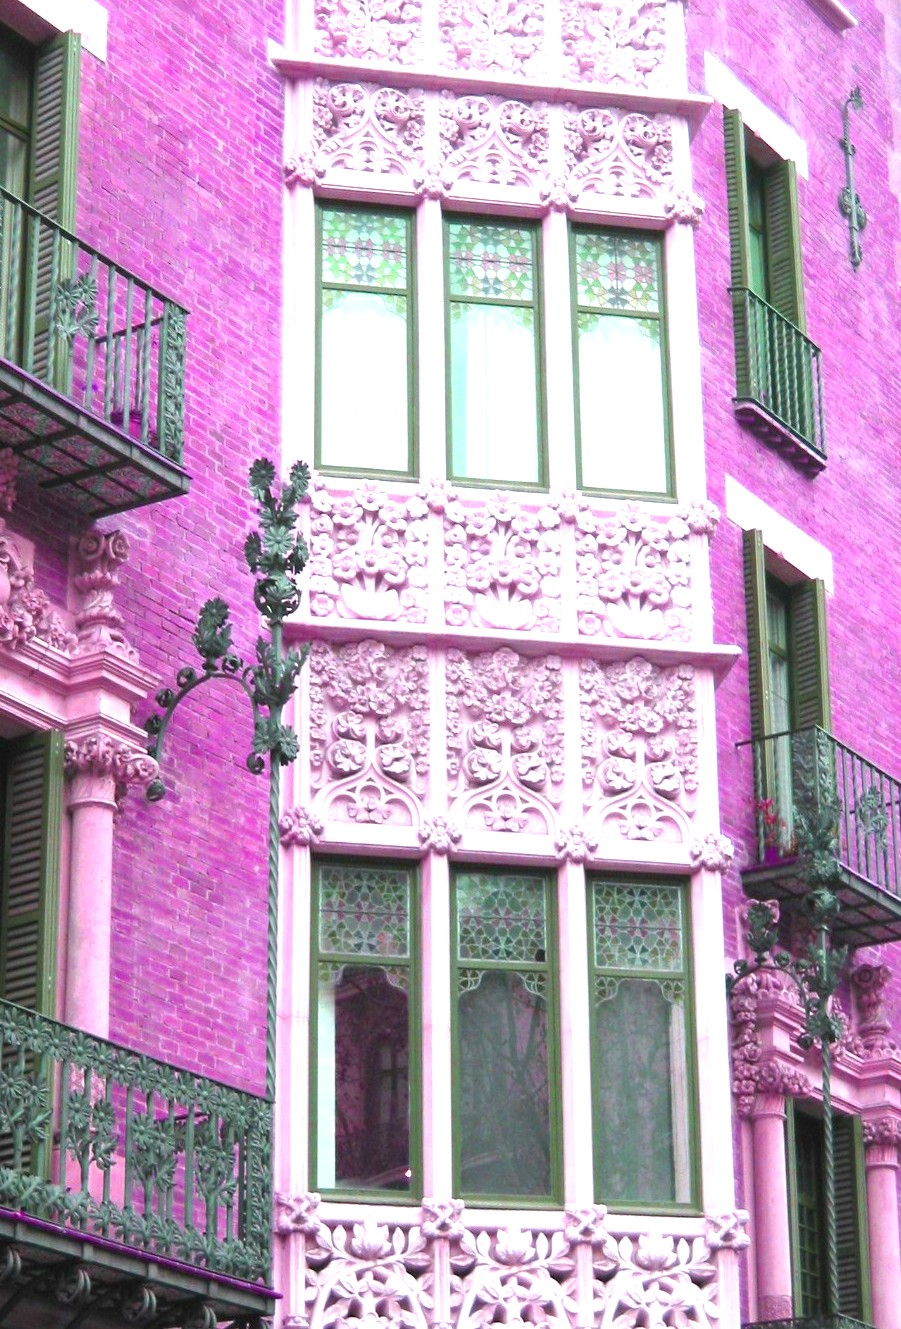 Barcelona Windows.JPG